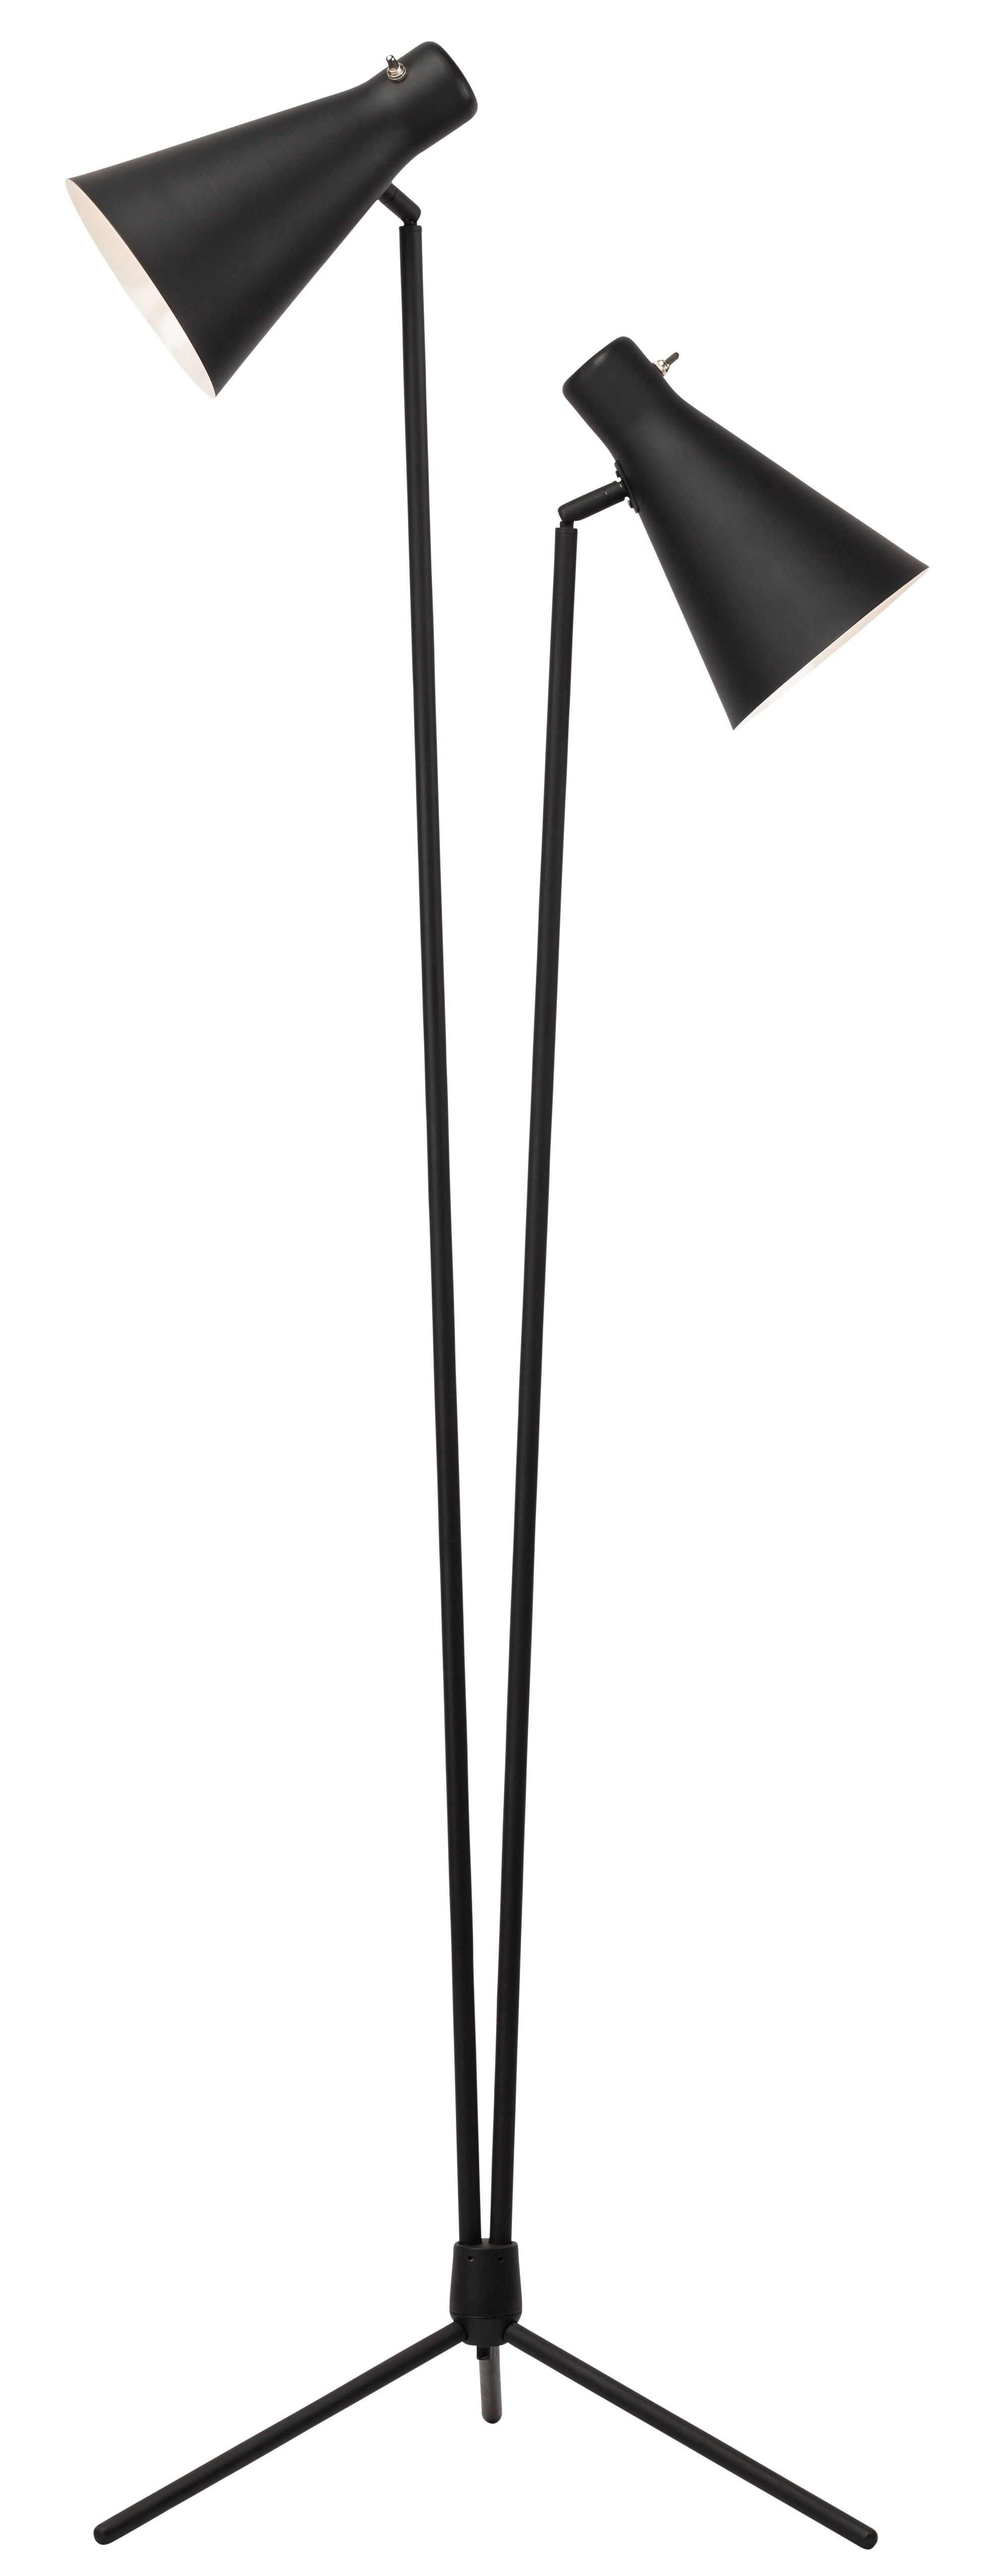 Add some light and style to your space with the Eleana Floor Lamp